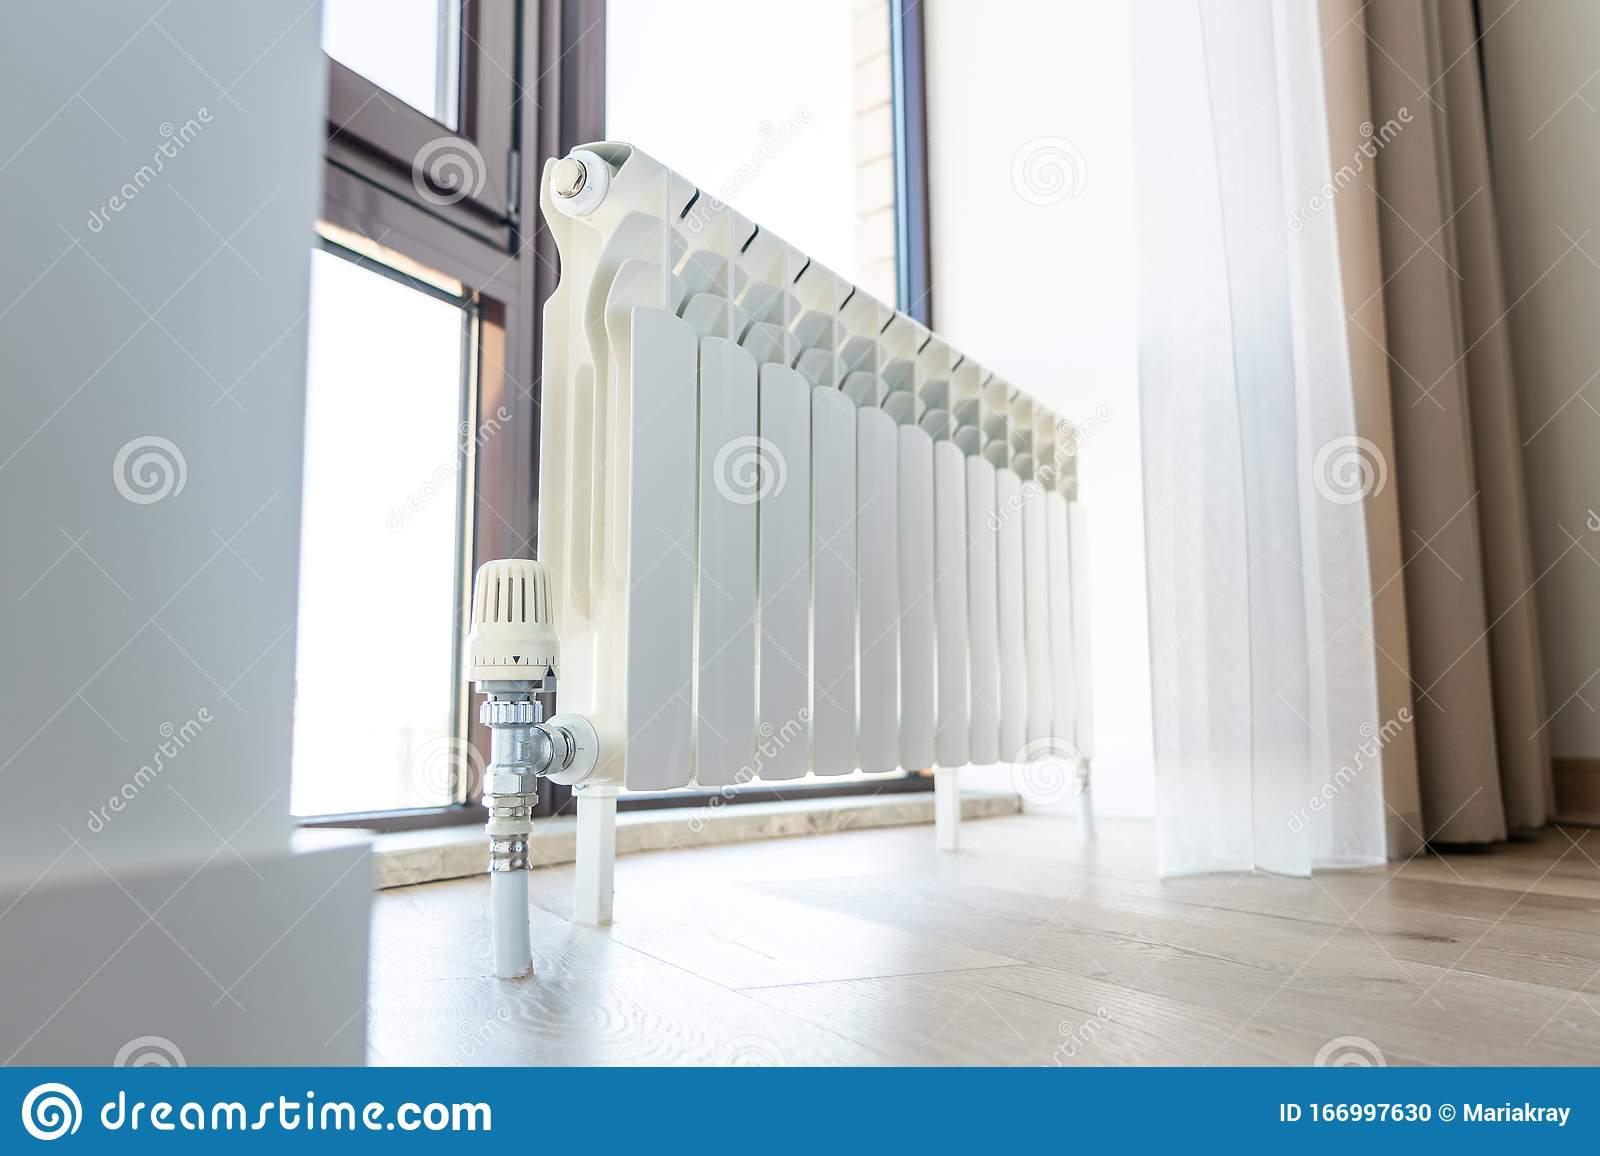 White Big Radiator With Thermostat Near Window In Modern Room Stock Photo Image Of Metal System 166997630